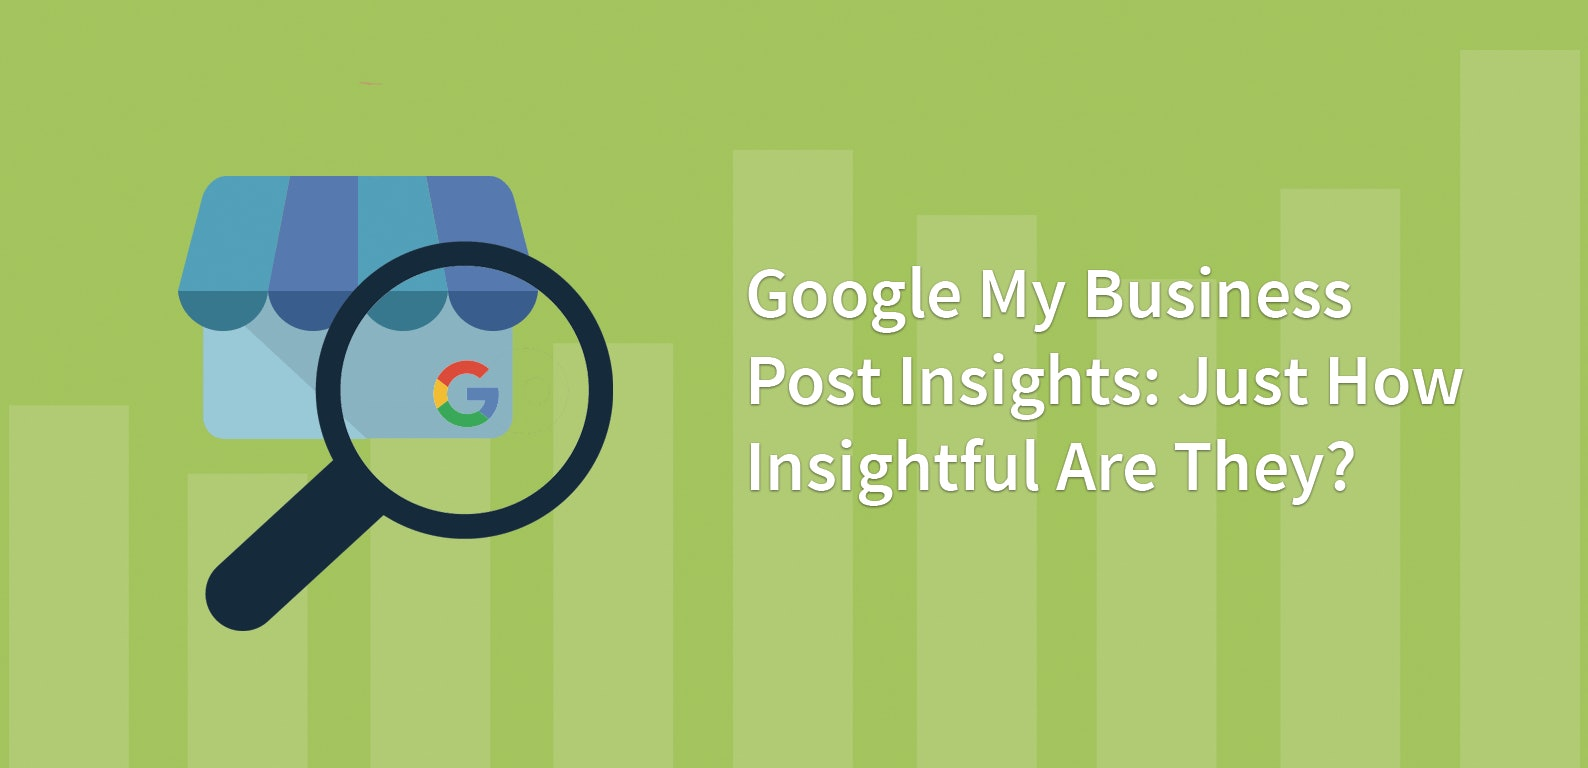 Google My Business Post Insights: Just How Insightful Are They?